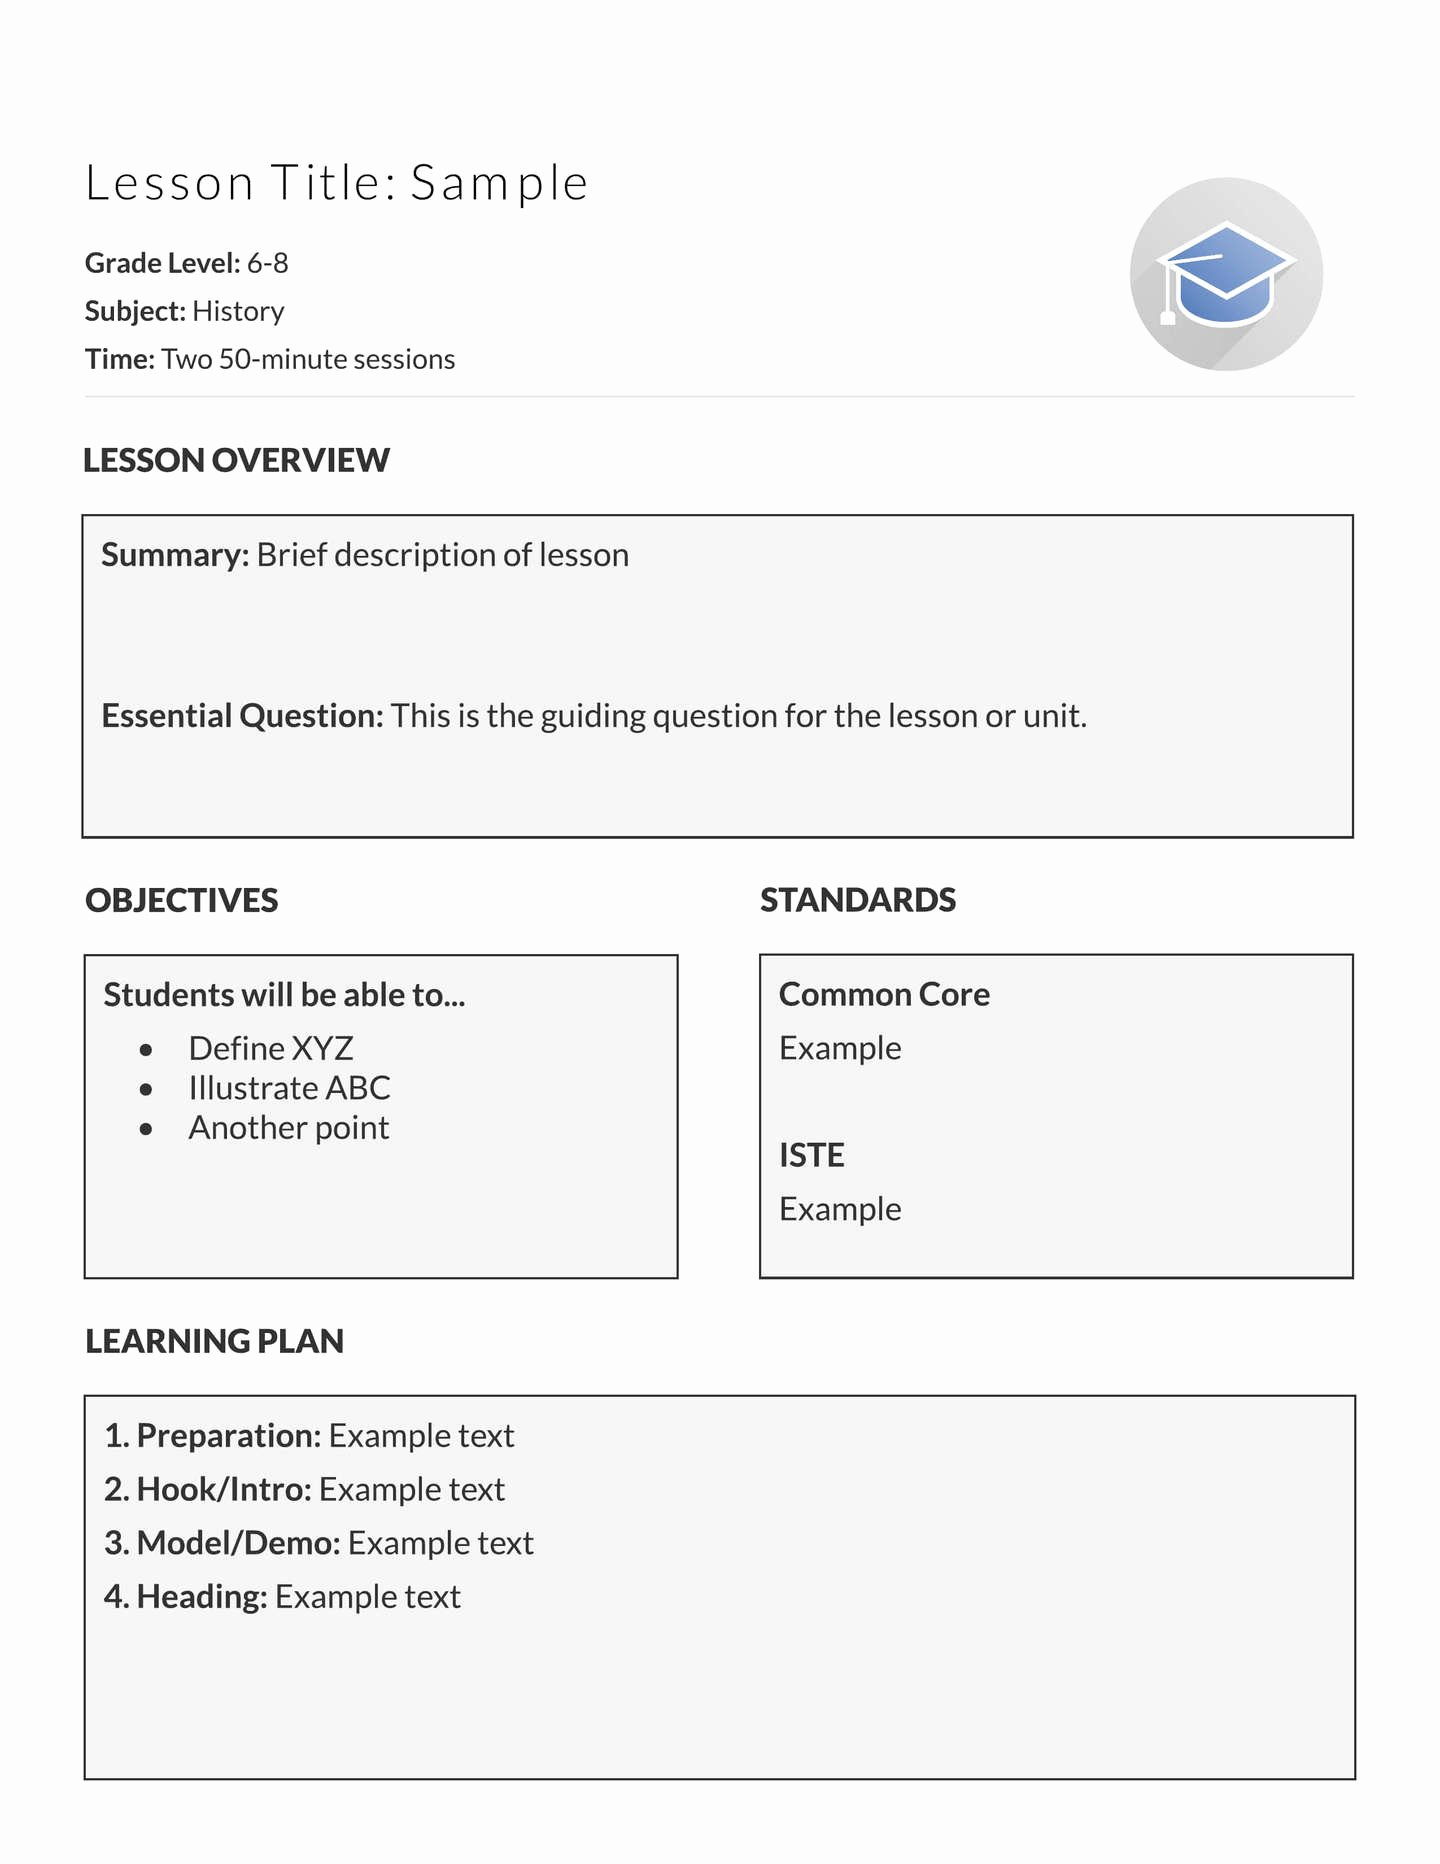 Demo Lesson Plan Template Lovely 5 Free Lesson Plan Templates & Examples Lucidpress